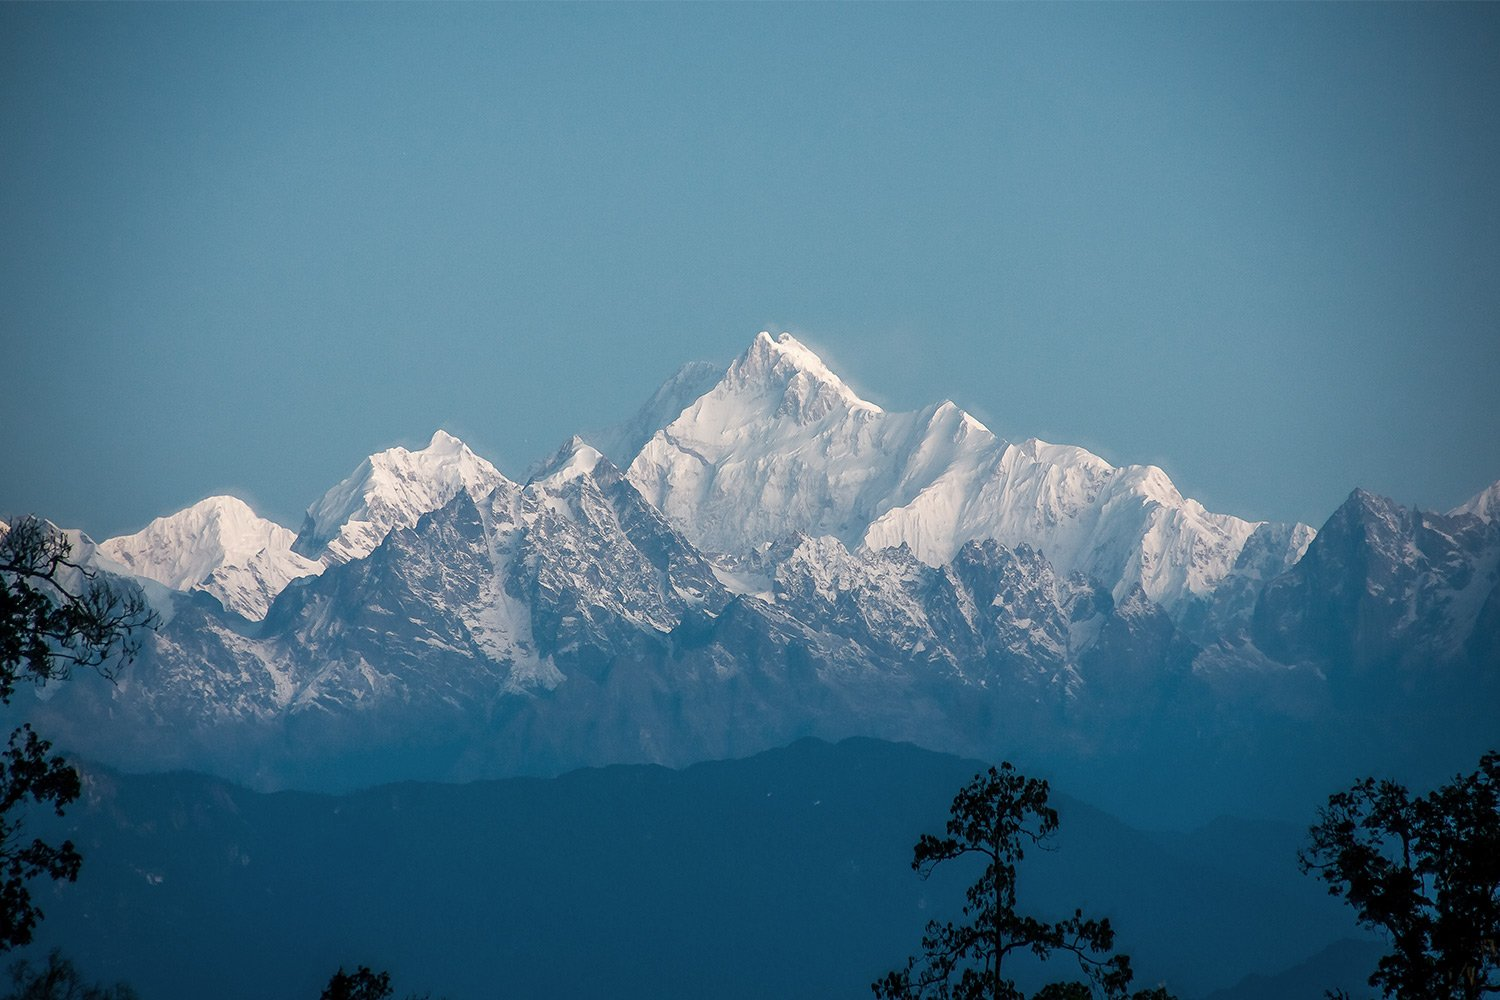 View of the Himalayas in India with trees in the foreground and blue sky in the background